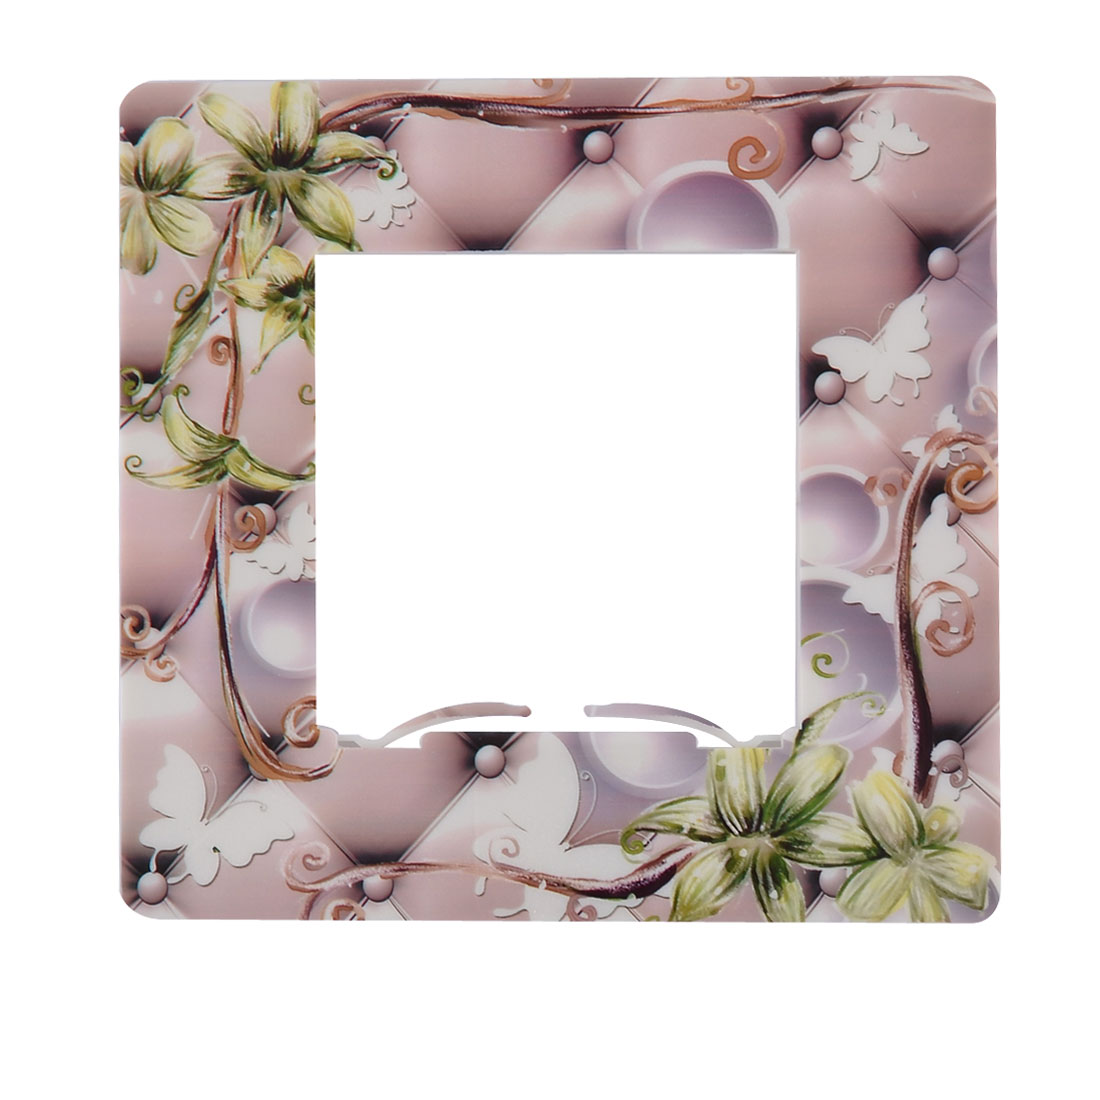 Plastic Flower Pattern Square Design Wall Light Switch Socket Cover Plate